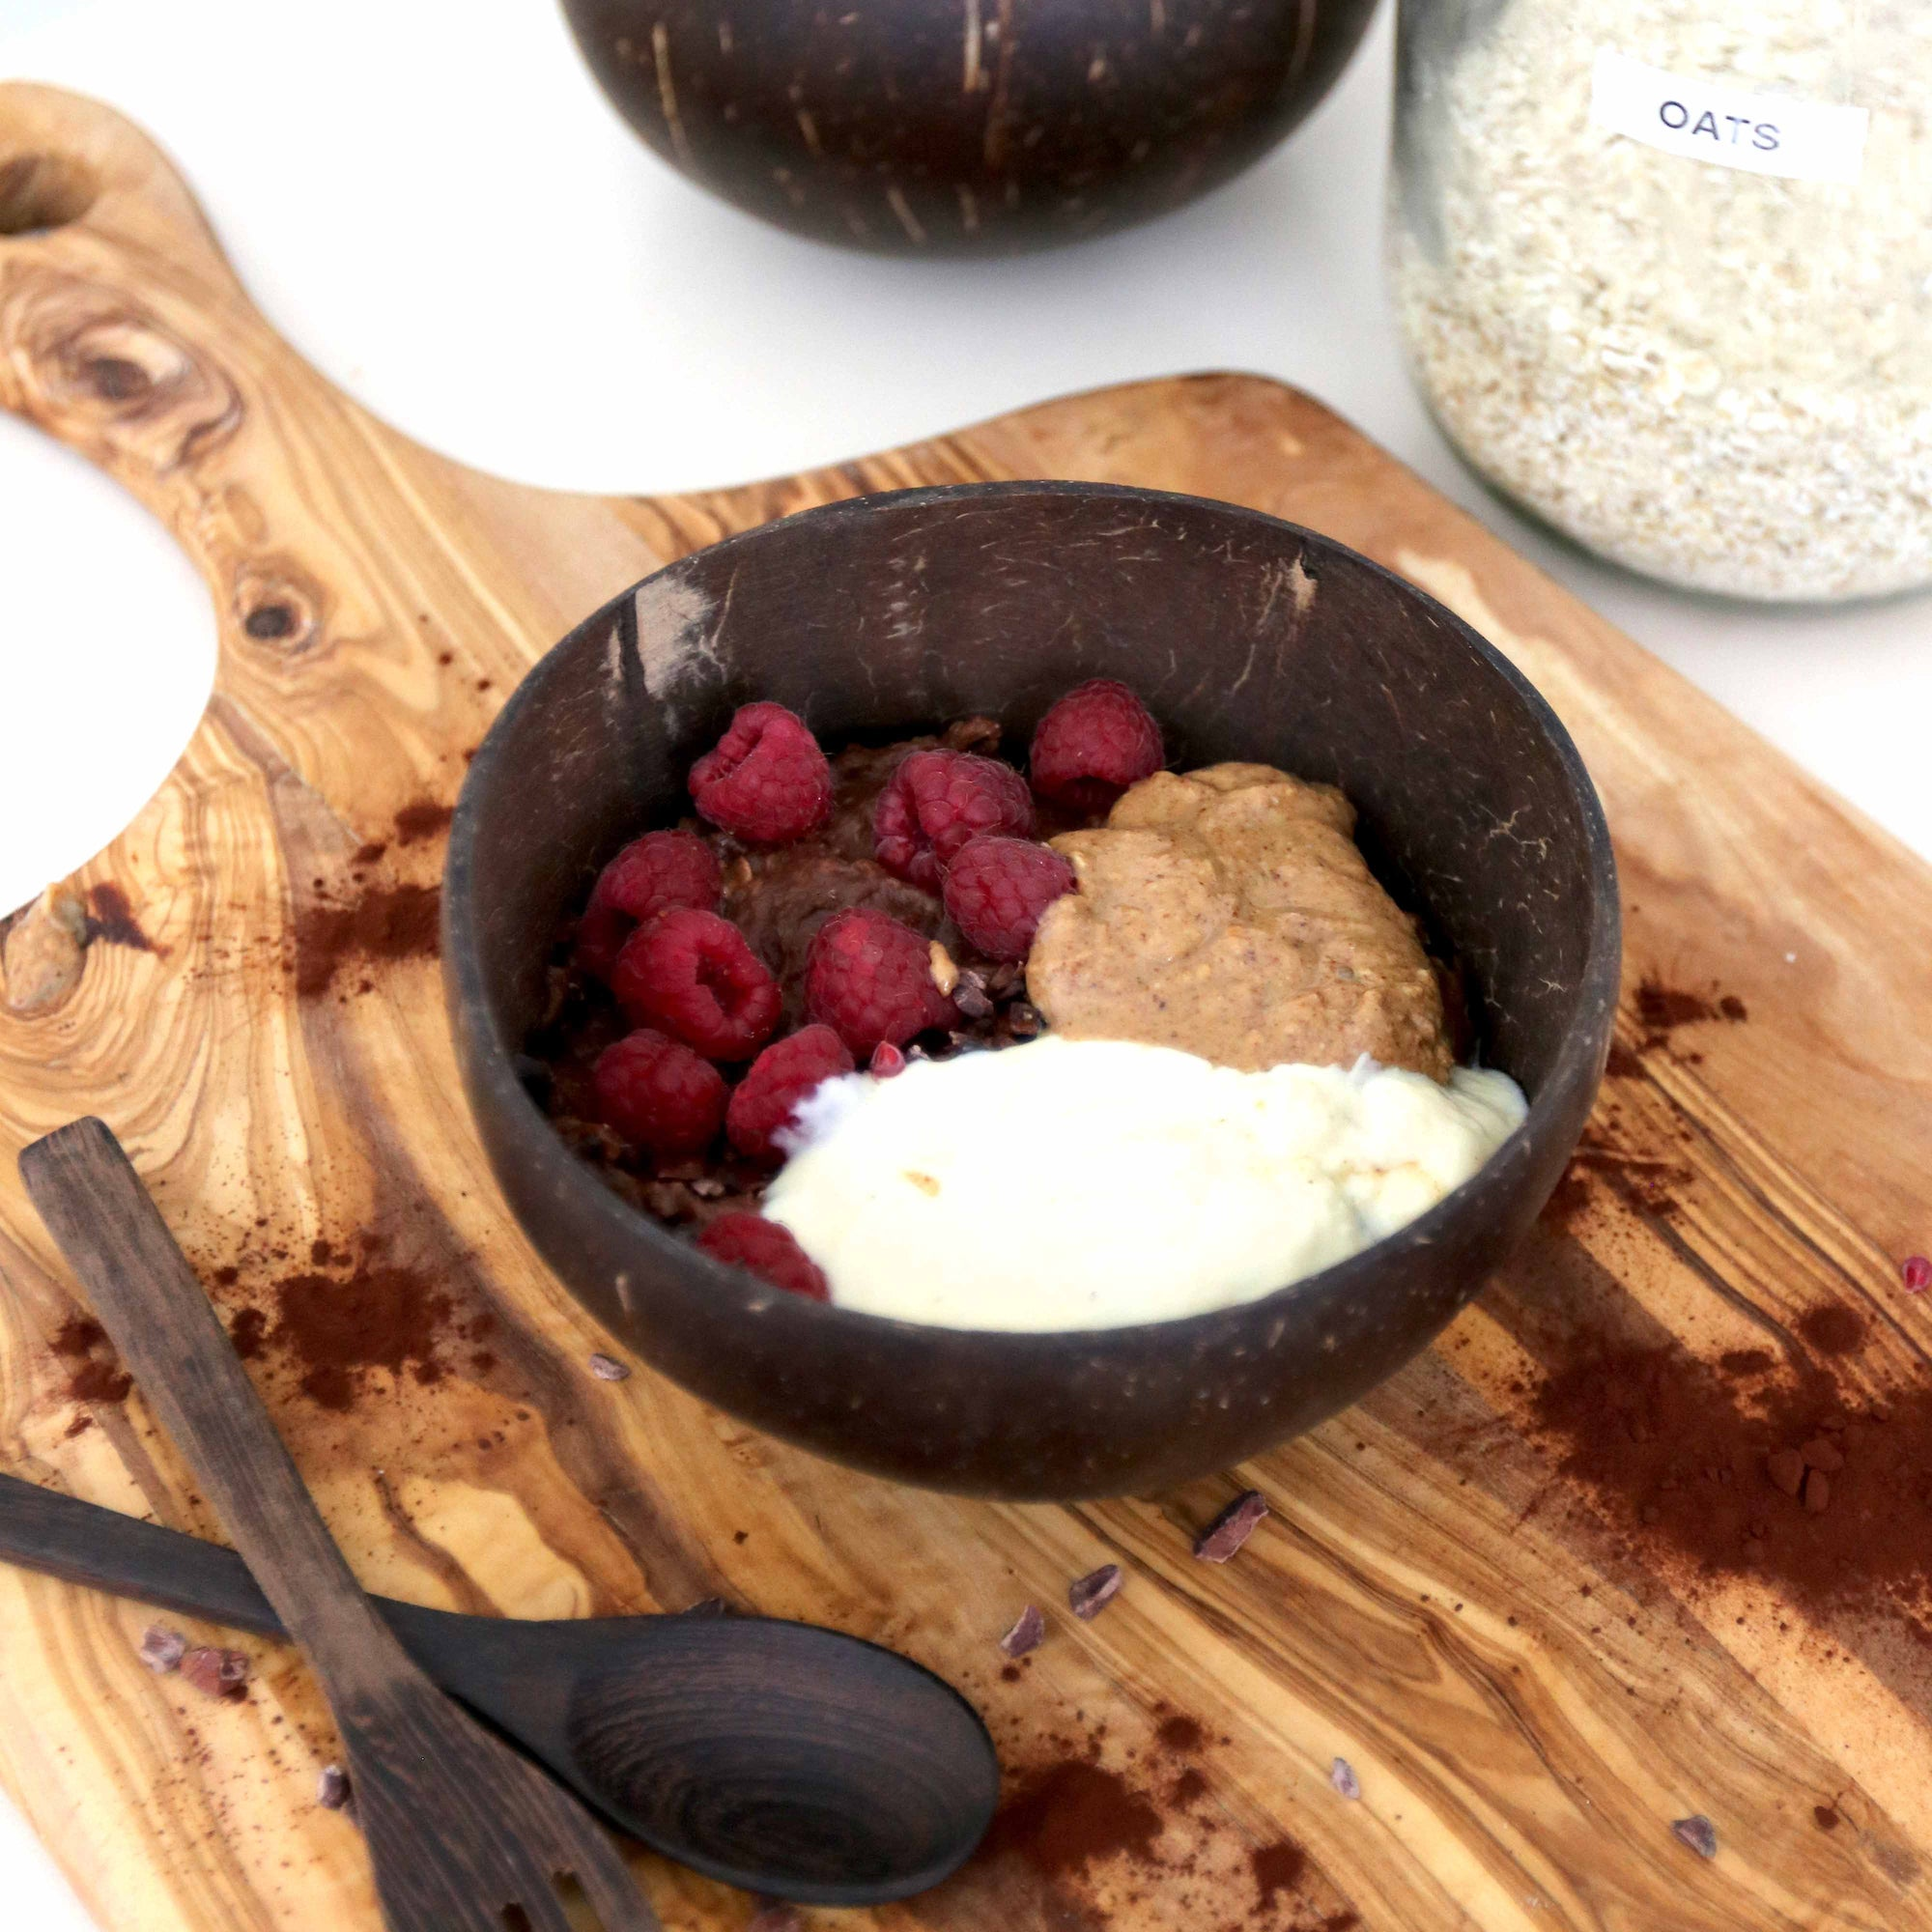 Ultimate Chocolate Oats with Raspberries